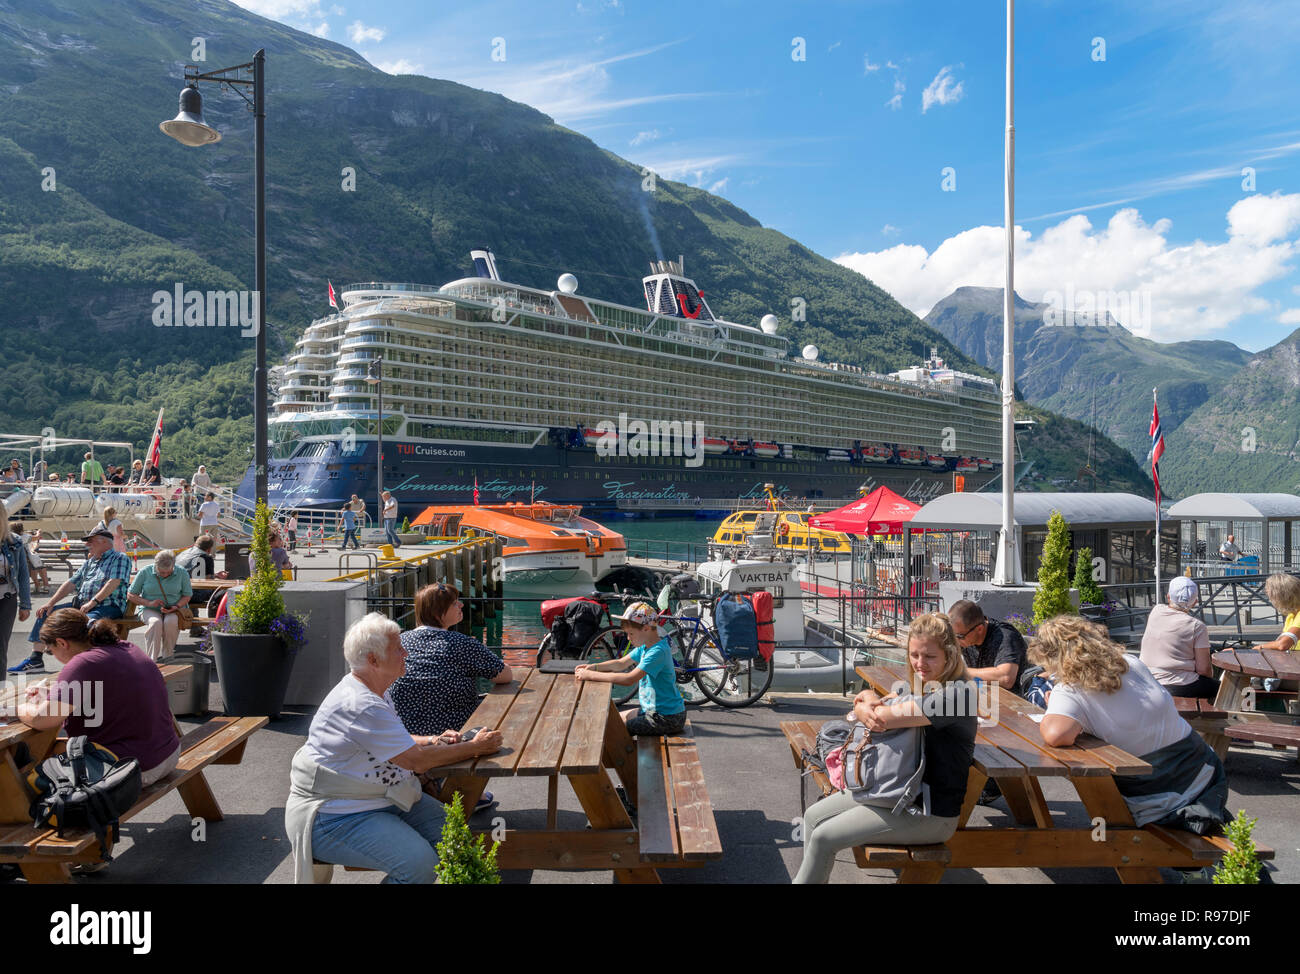 Quayside with Tui Mein Schiff 1 (now Mariella Explorer) cruise ship in the background, Geiranger, Møre og Romsdal, Sunnmøre, Norway - Stock Image